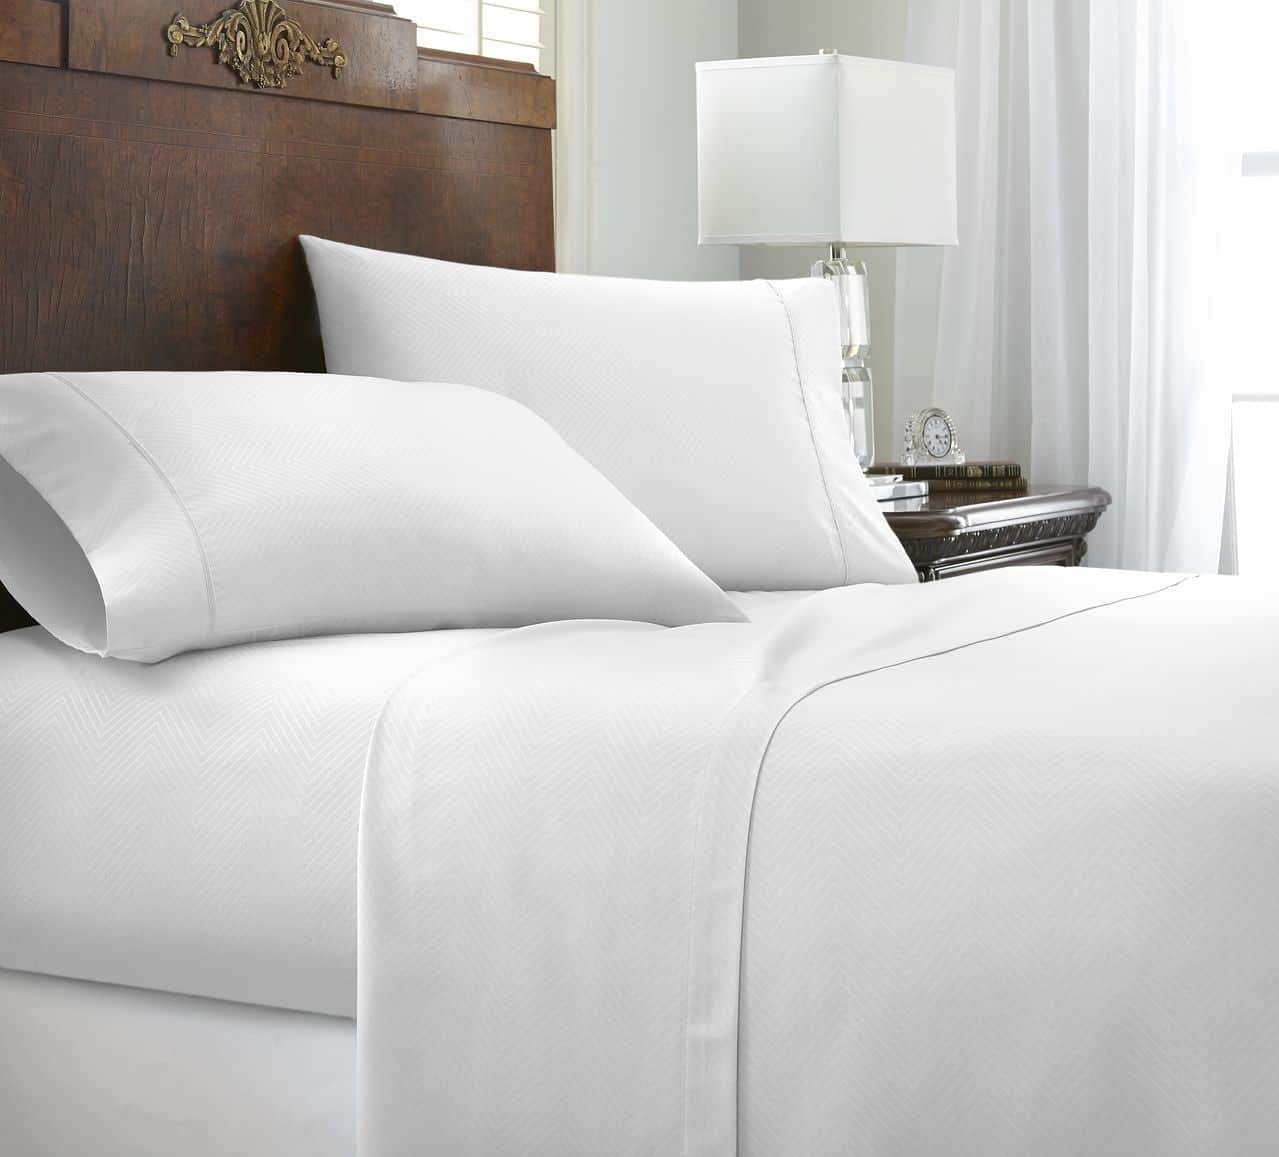 ienjoy Home 4 Piece Home Collection Premium Embossed Chevron Design Bed Sheet Set, King, White